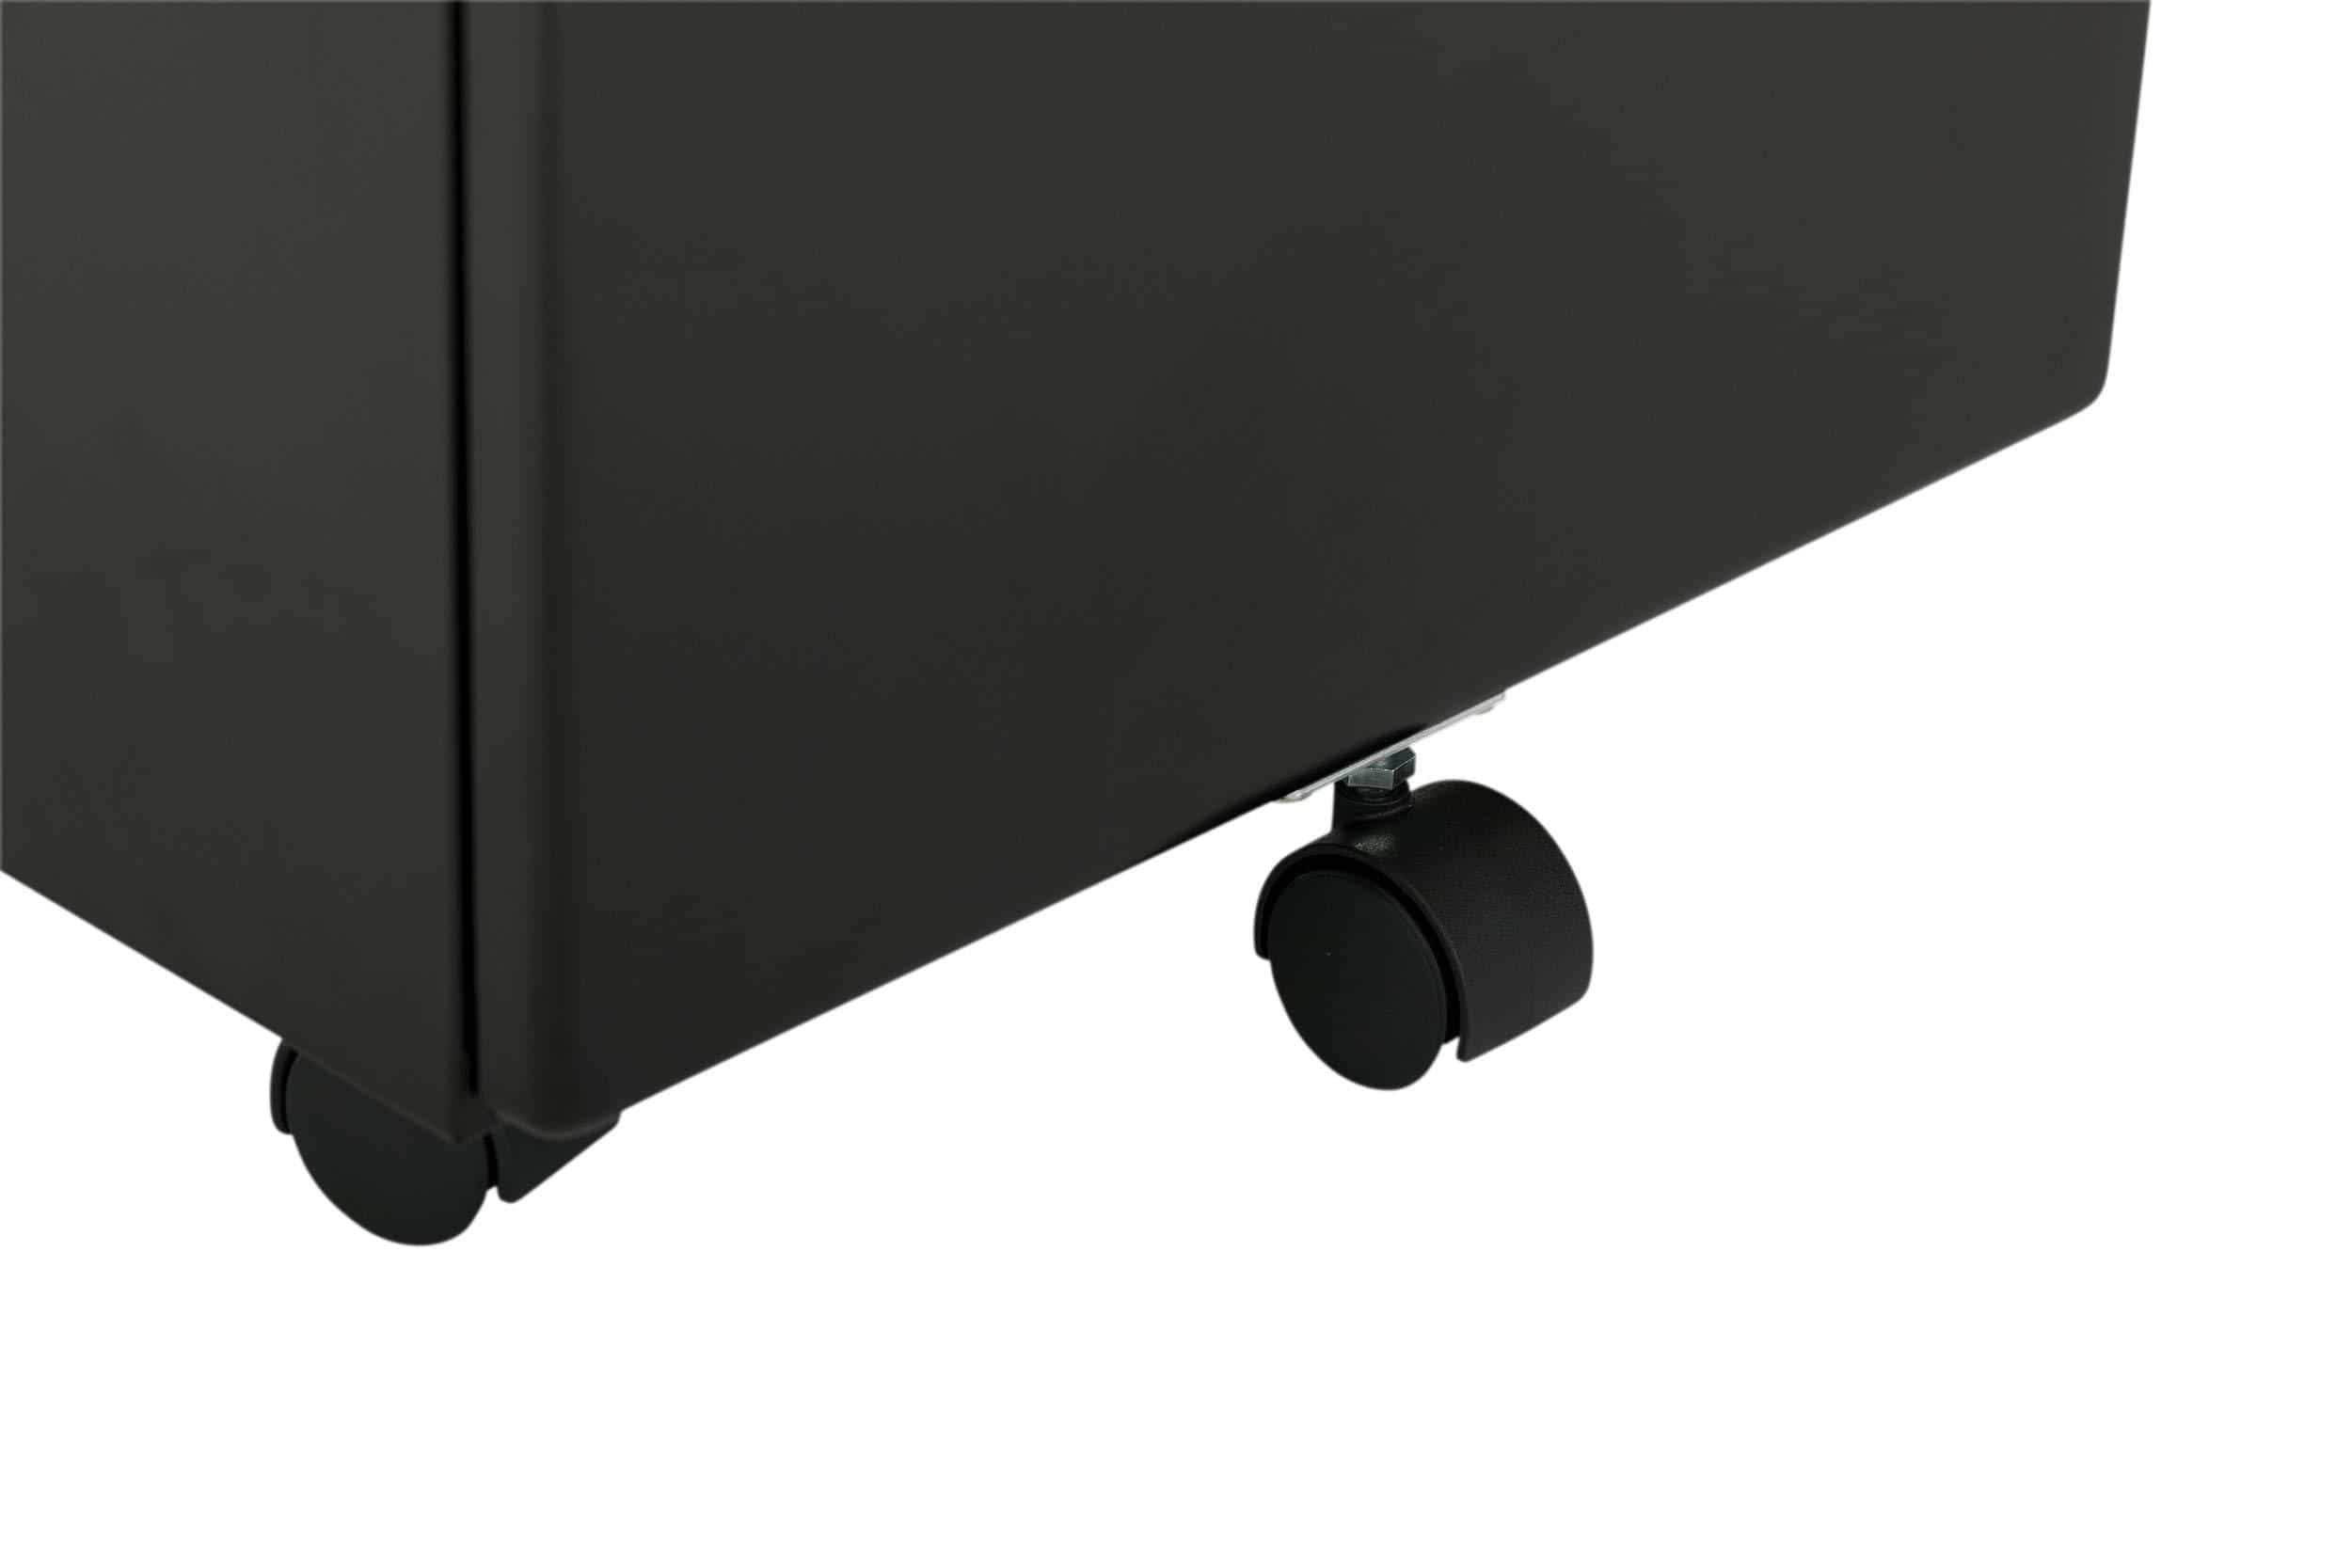 Explore craft hobby essentials 62002 metal 3 vertical mobile filing cabinet 15 75 w x 22 d craft supply storage with locking drawers in black